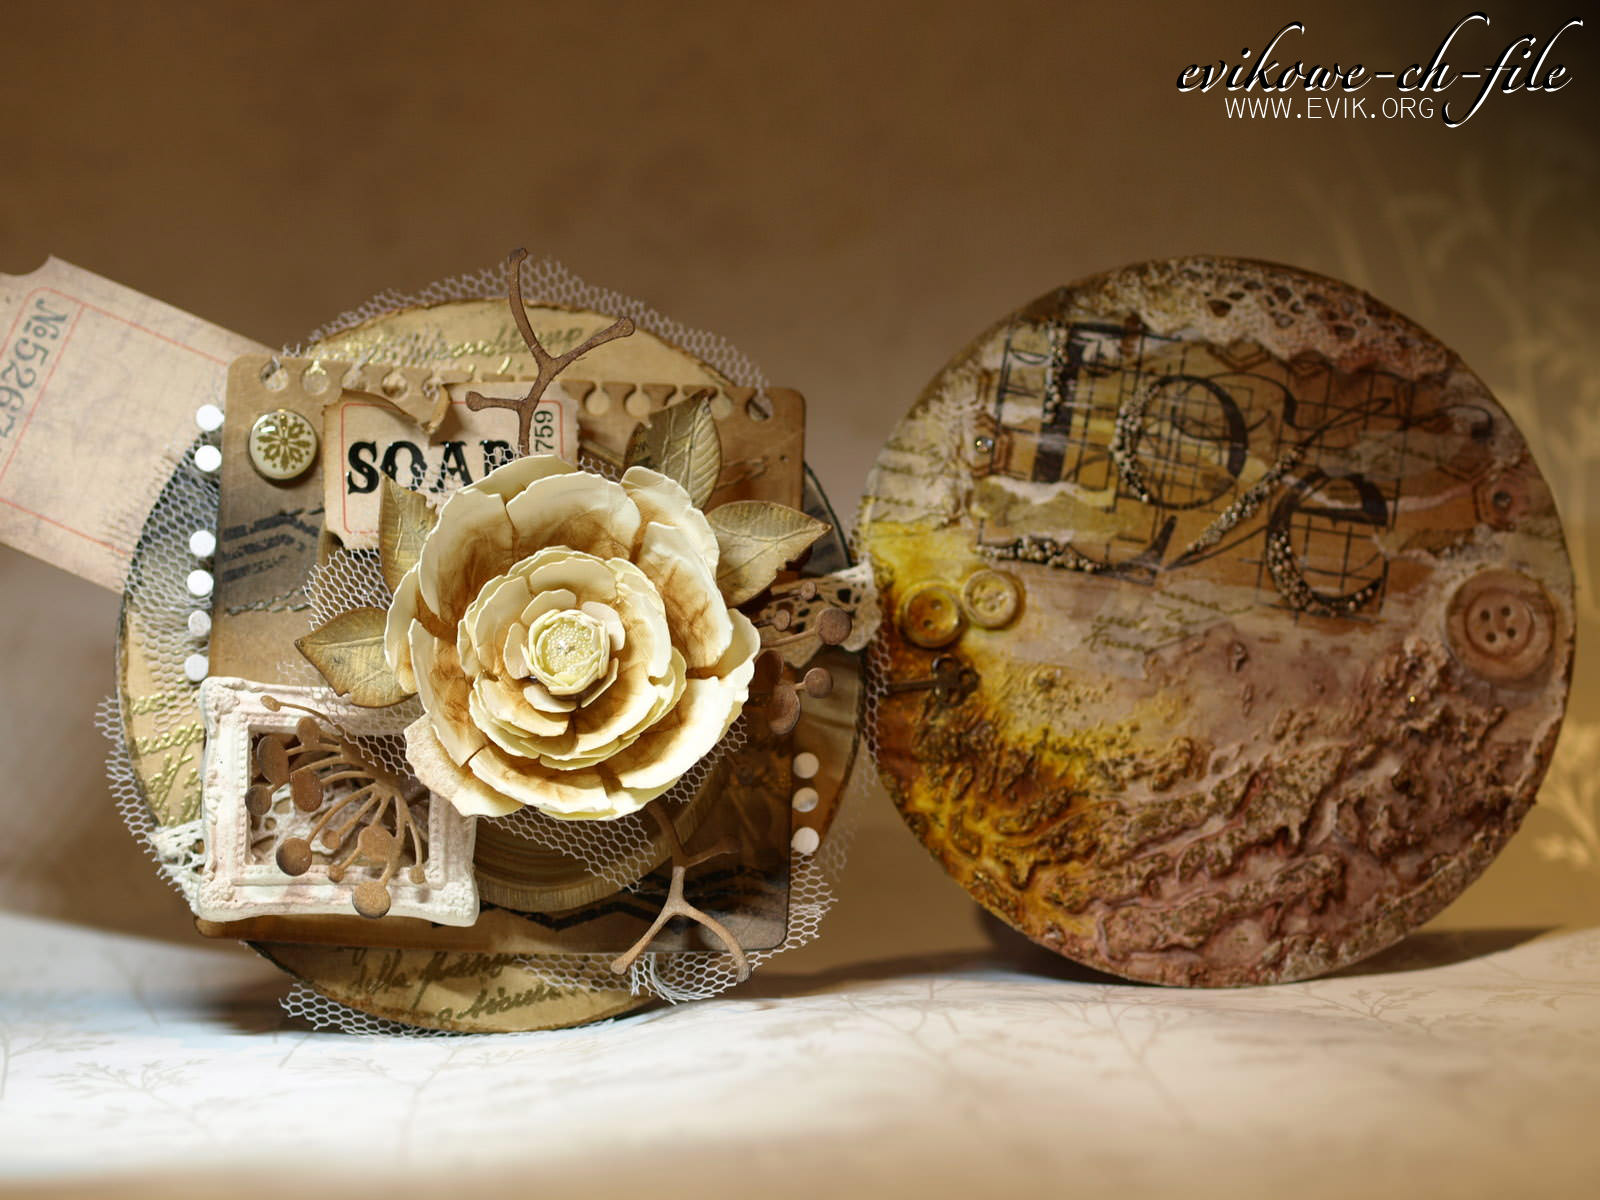 Die-namics Mini Album Torn Notebook STAX, Memory Box - Chloe stem, Tim Holtz ticket, , Tim Holtz Sizzix Die TATTERED FLORALS Bigz Flower, Evik, Evikowe-ch-file card, gold embossing, Glimmer mist, Adirondack Color Wahsh butterscotch